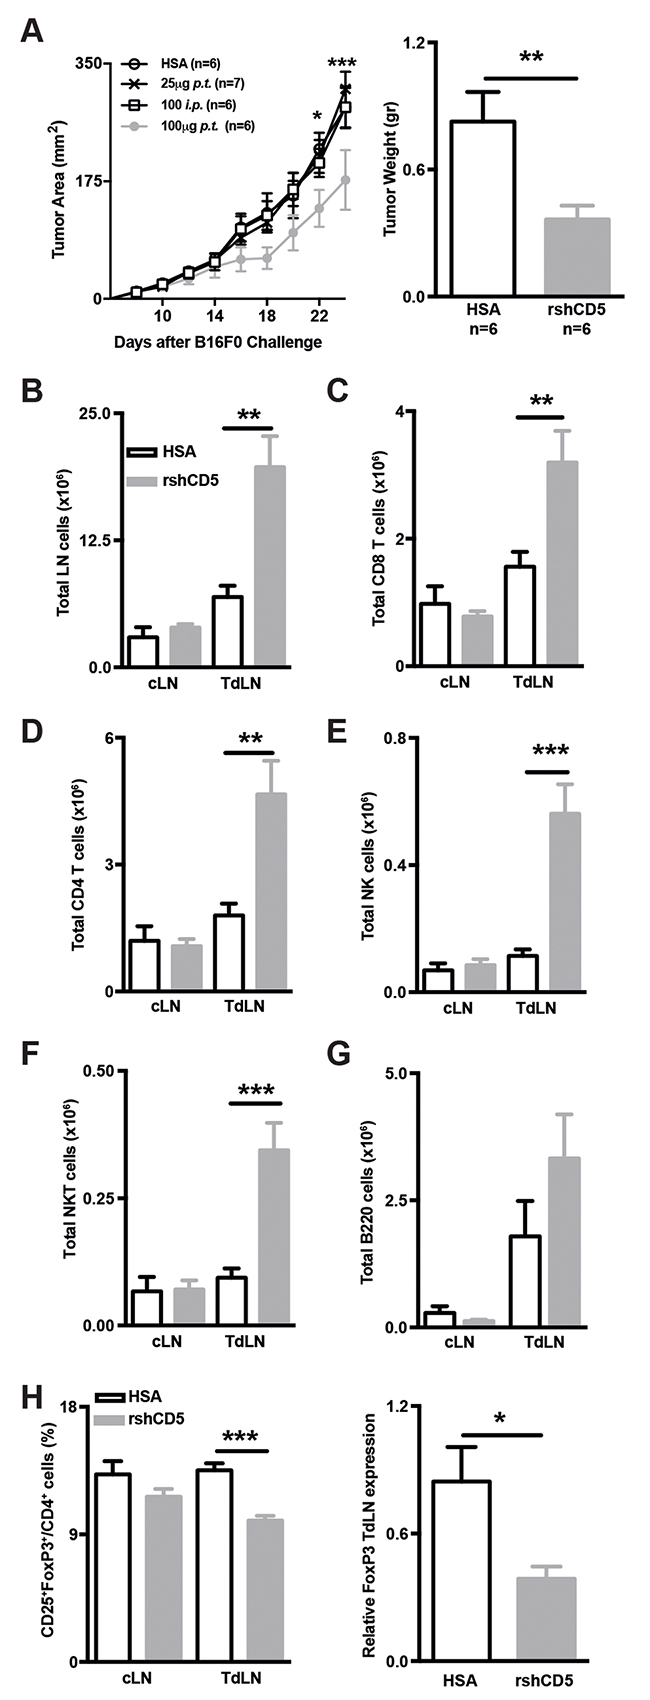 Exogenous administration of rshCD5 to WT mice mimics the anti-tumor effects of shCD5EμTg mice.